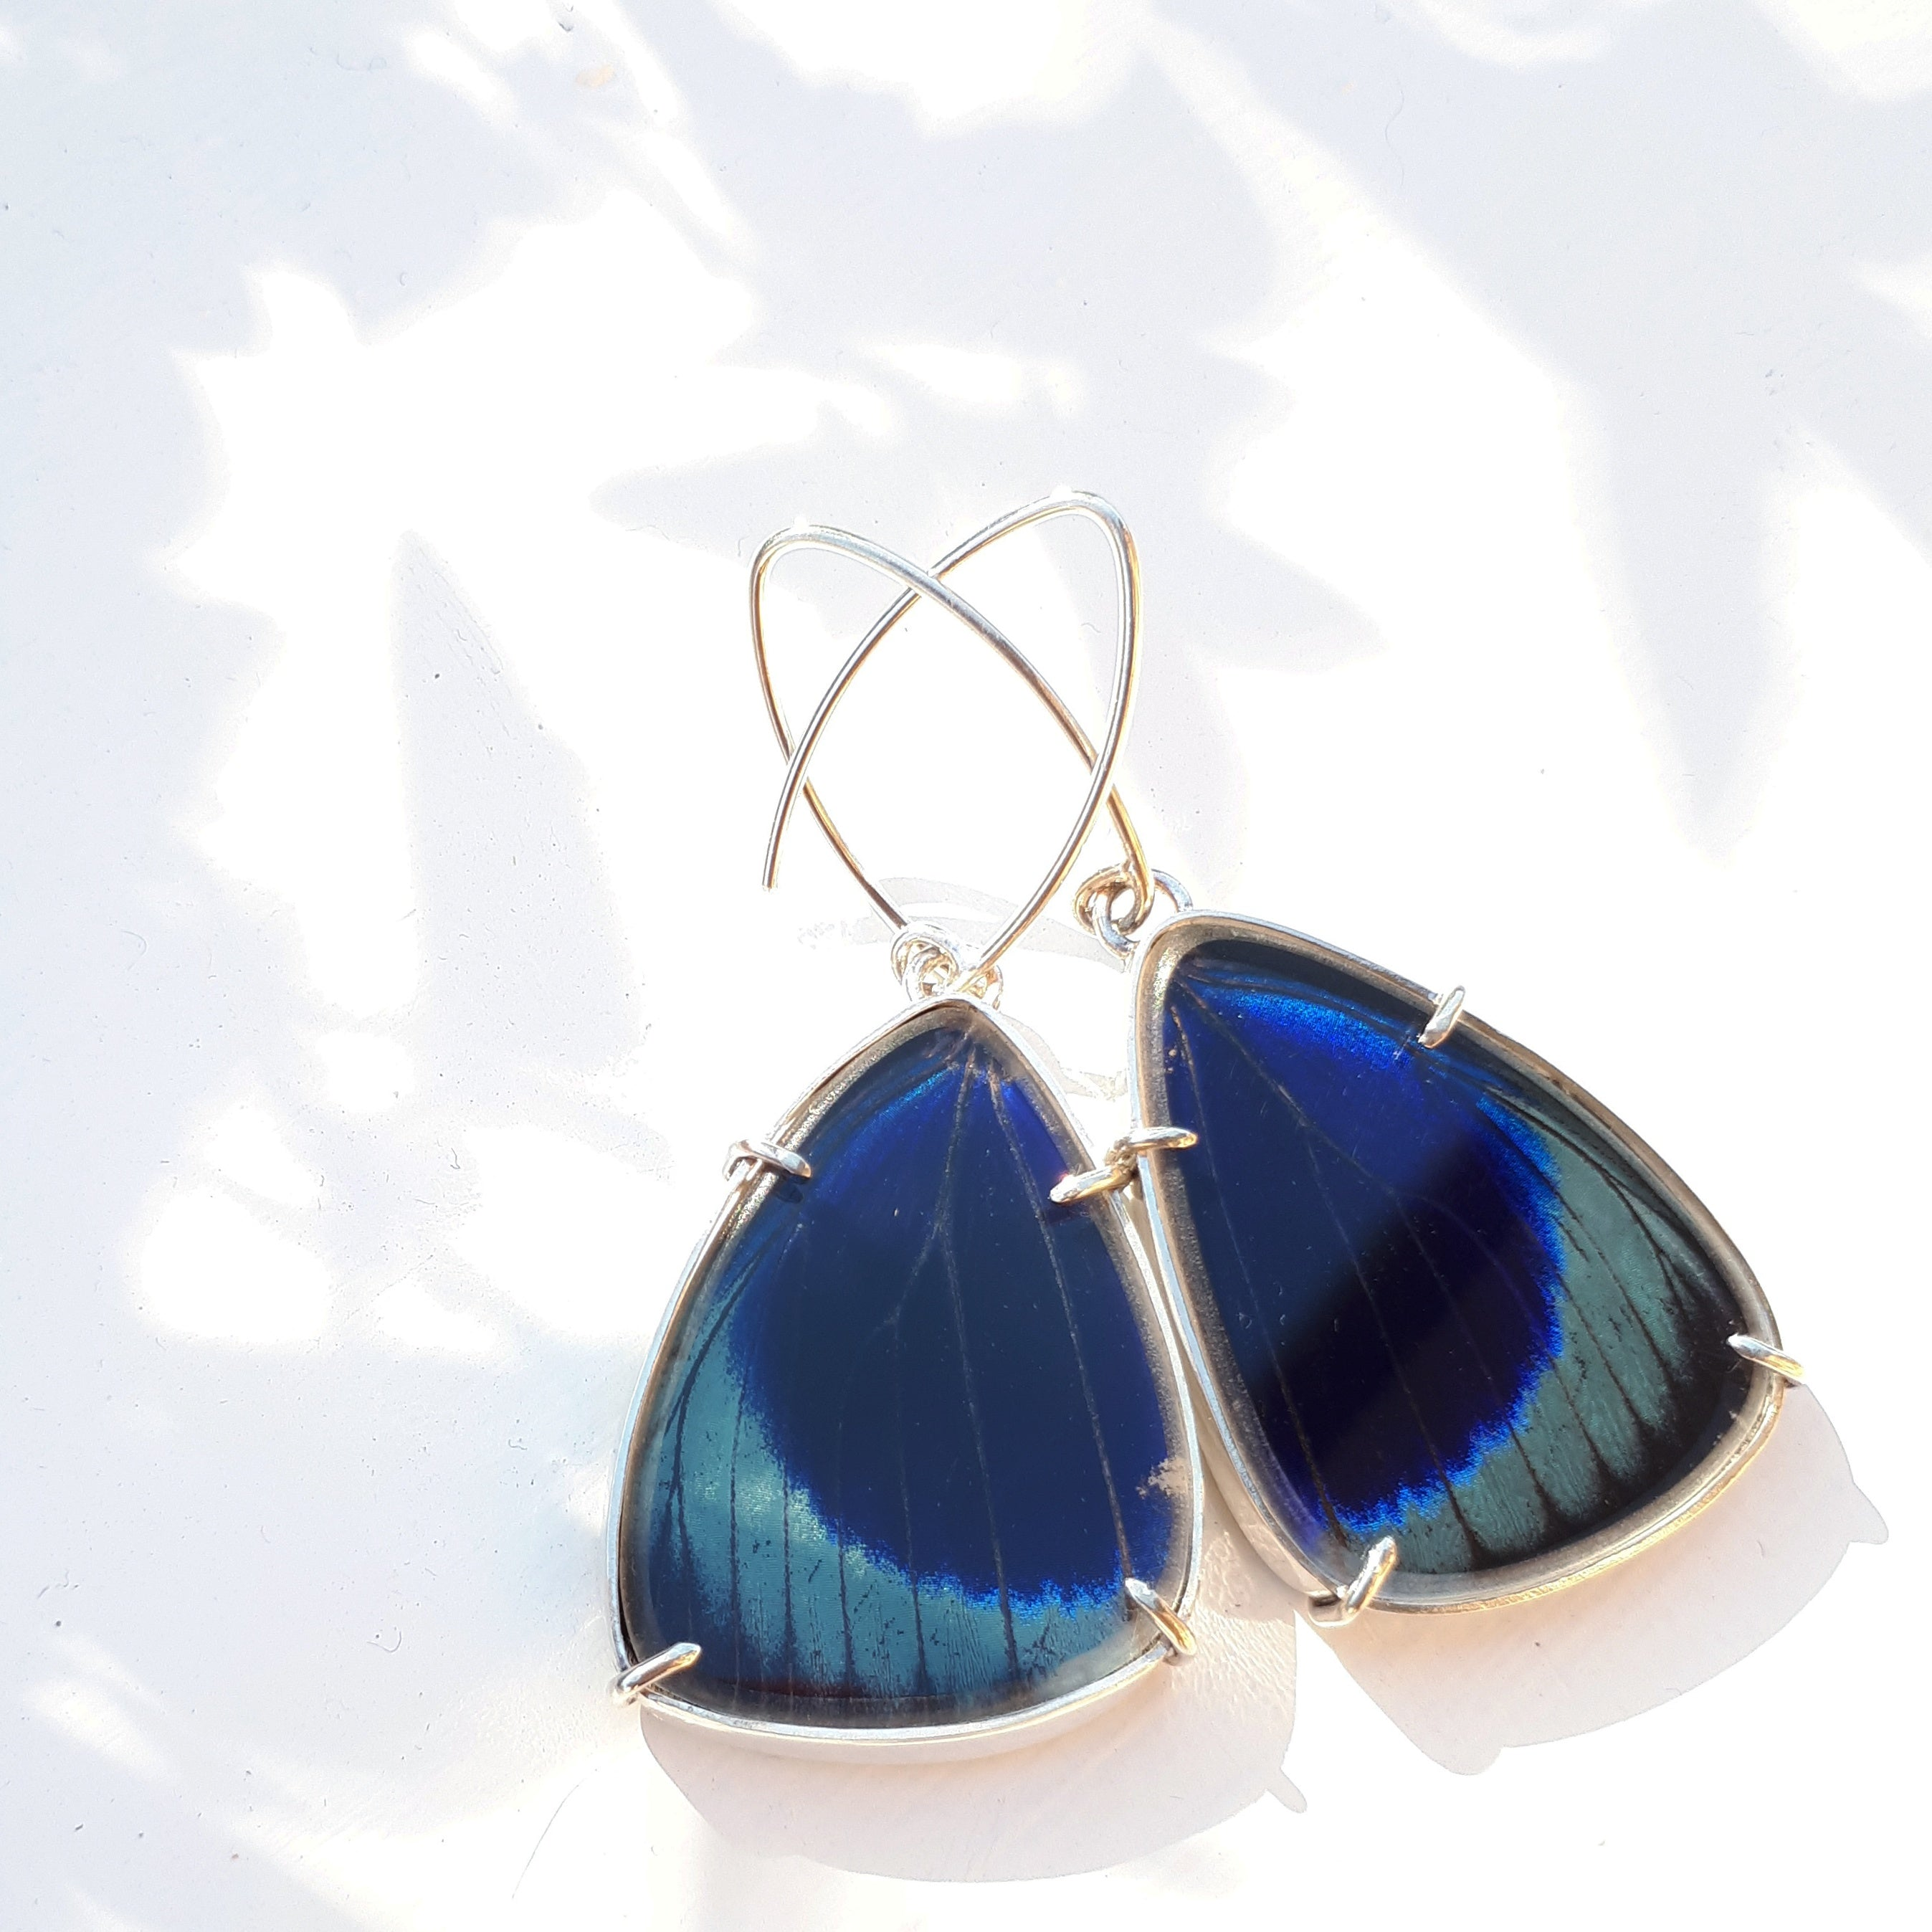 Emily Eliza Arlotte Handcrafted Fine Jewellery Real Butterfly Wing Earrings Asterope leprieuri